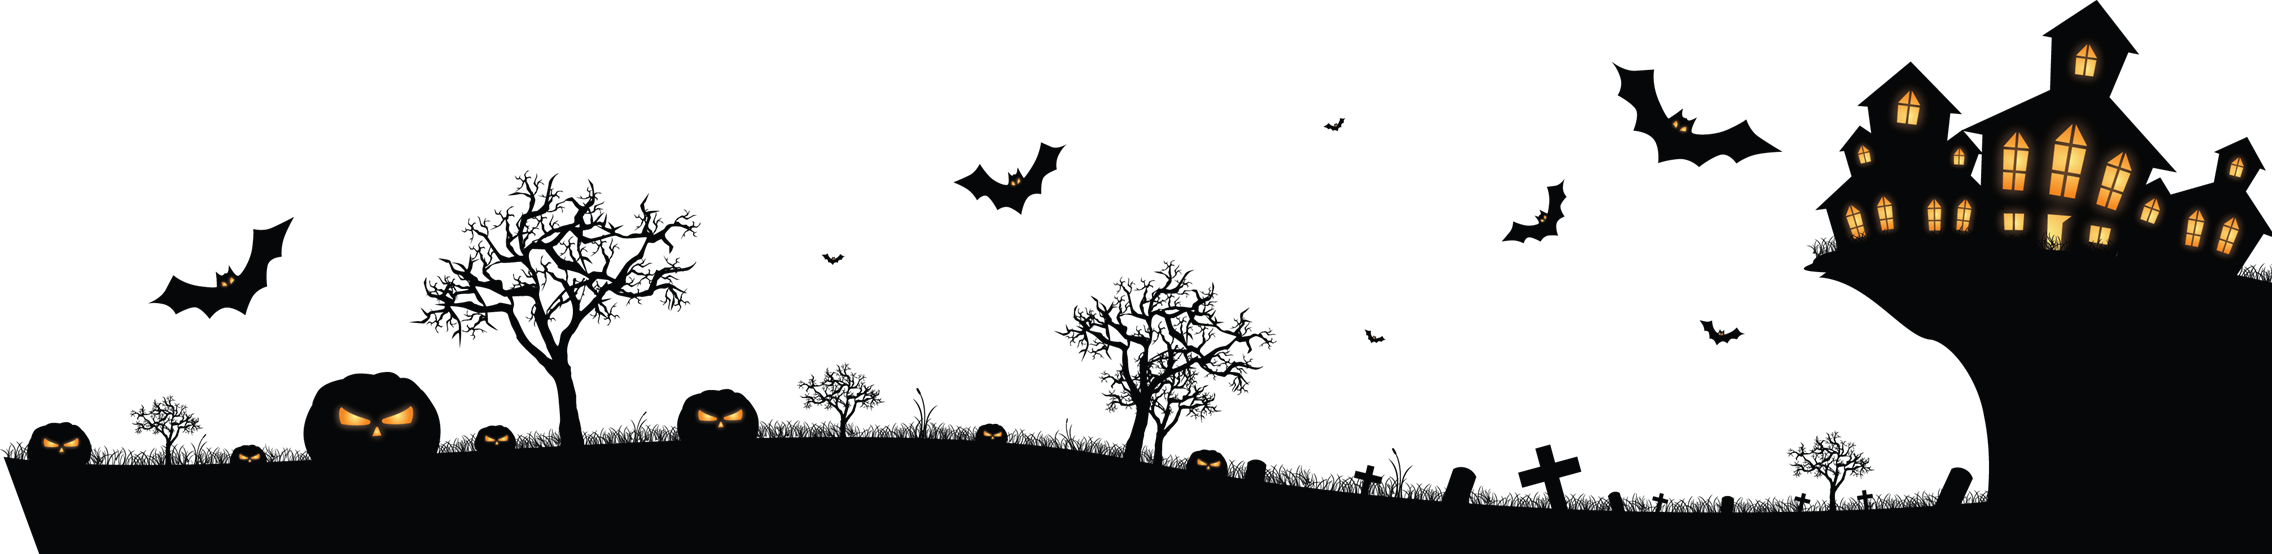 Halloween backgrounds png. Transparent images transparentpng image